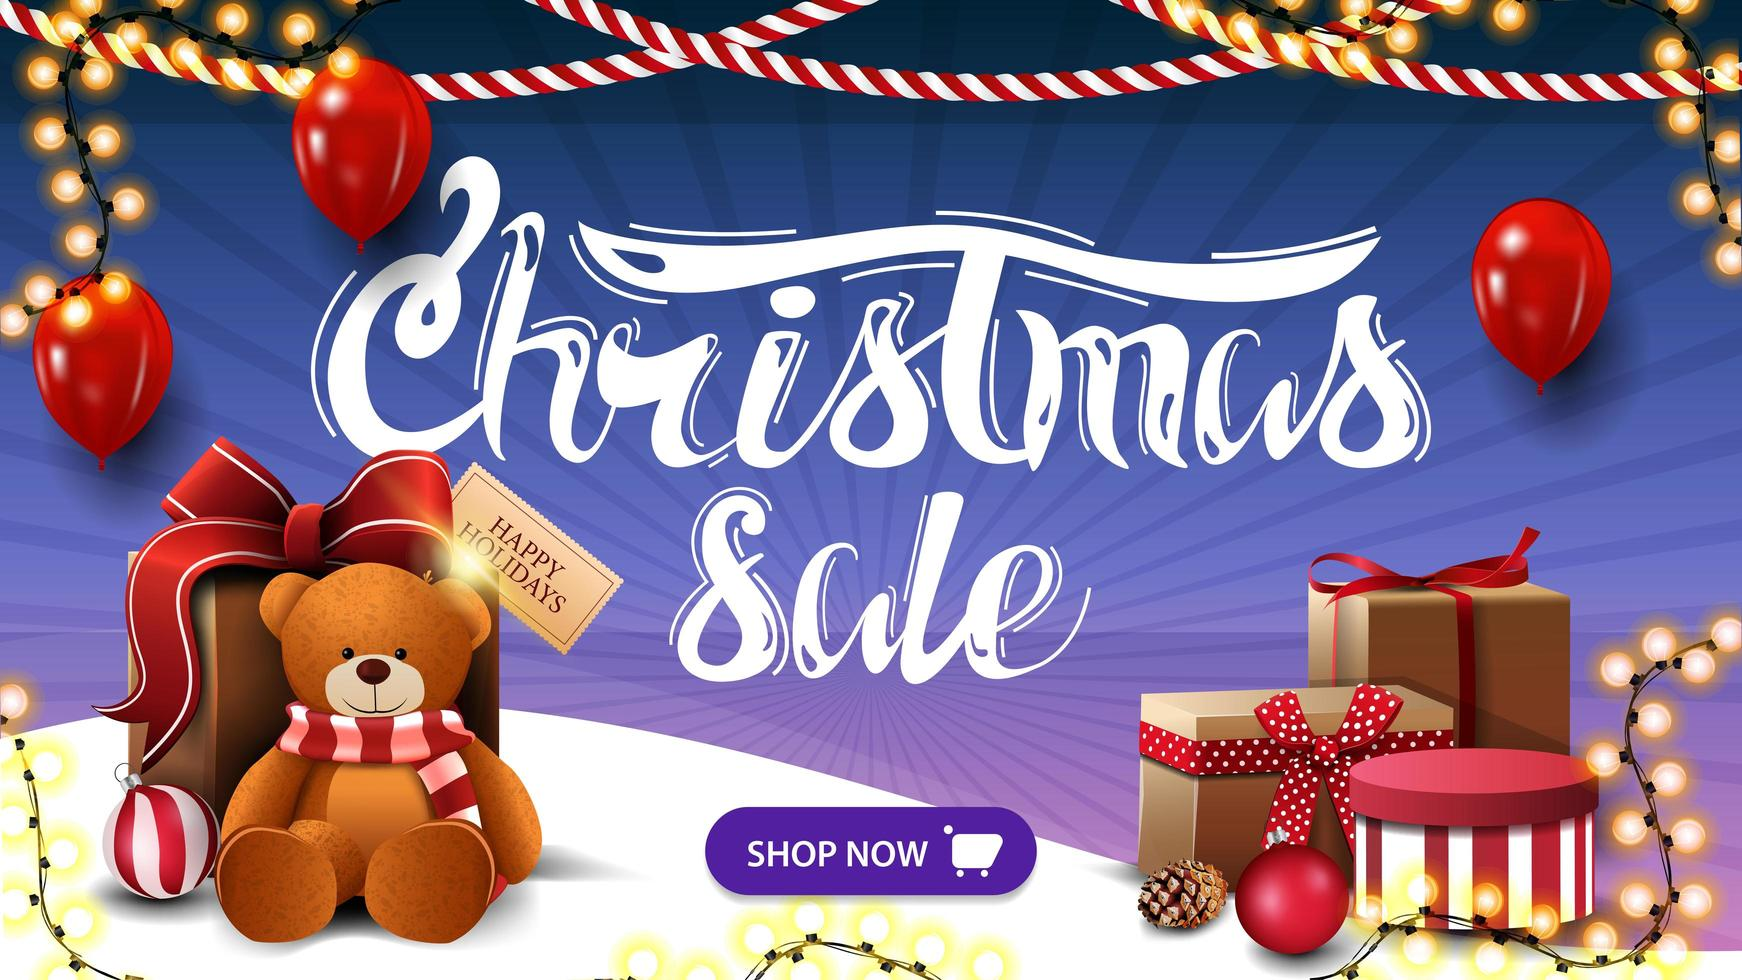 Christmas sale, blue discount banner with balloons, garlands, button and present with Teddy bear vector